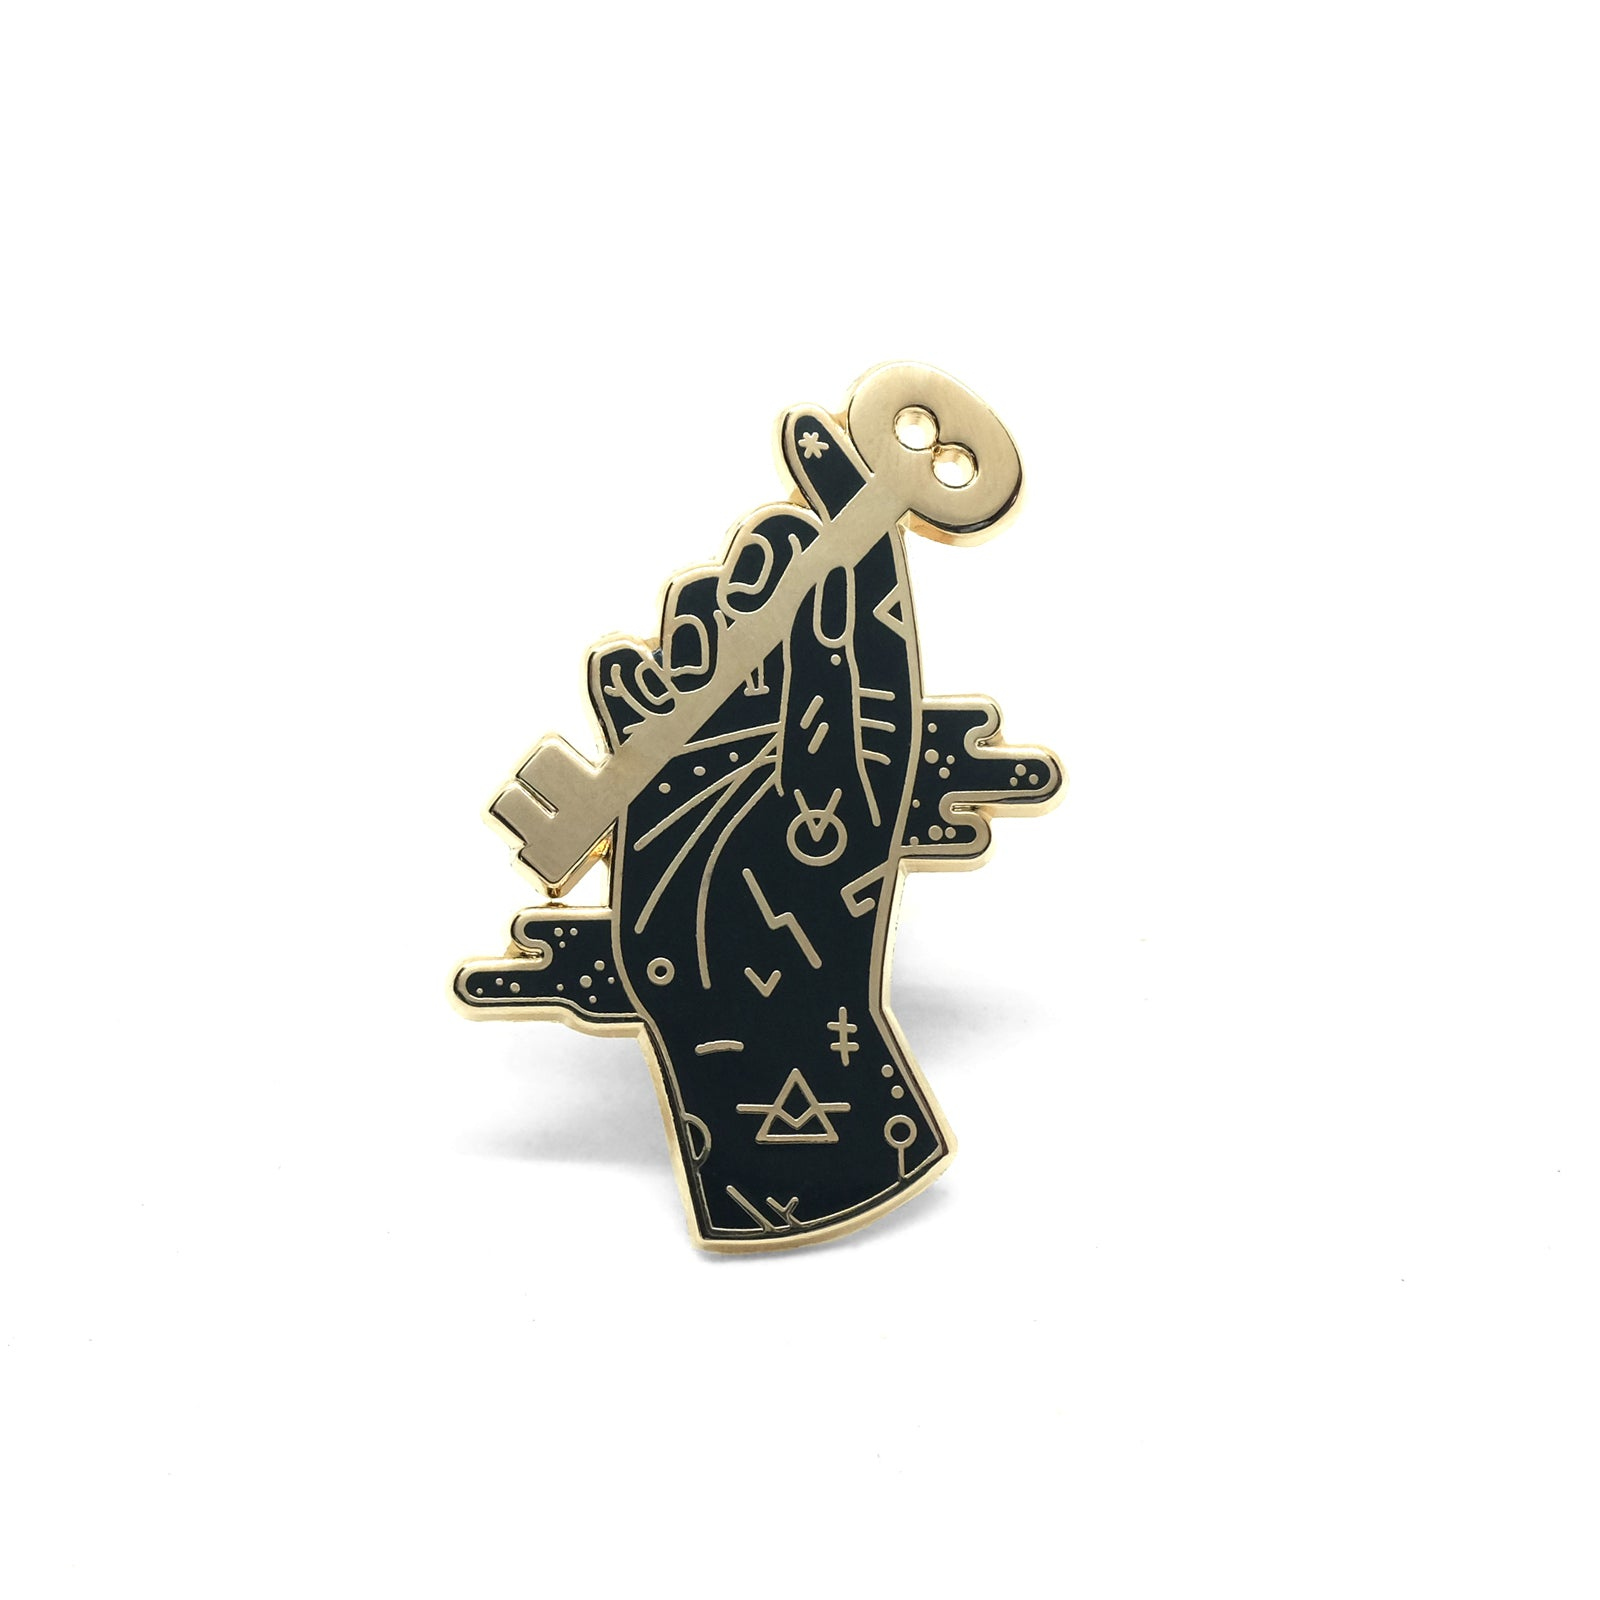 Camille Chew - Curio Key Pin